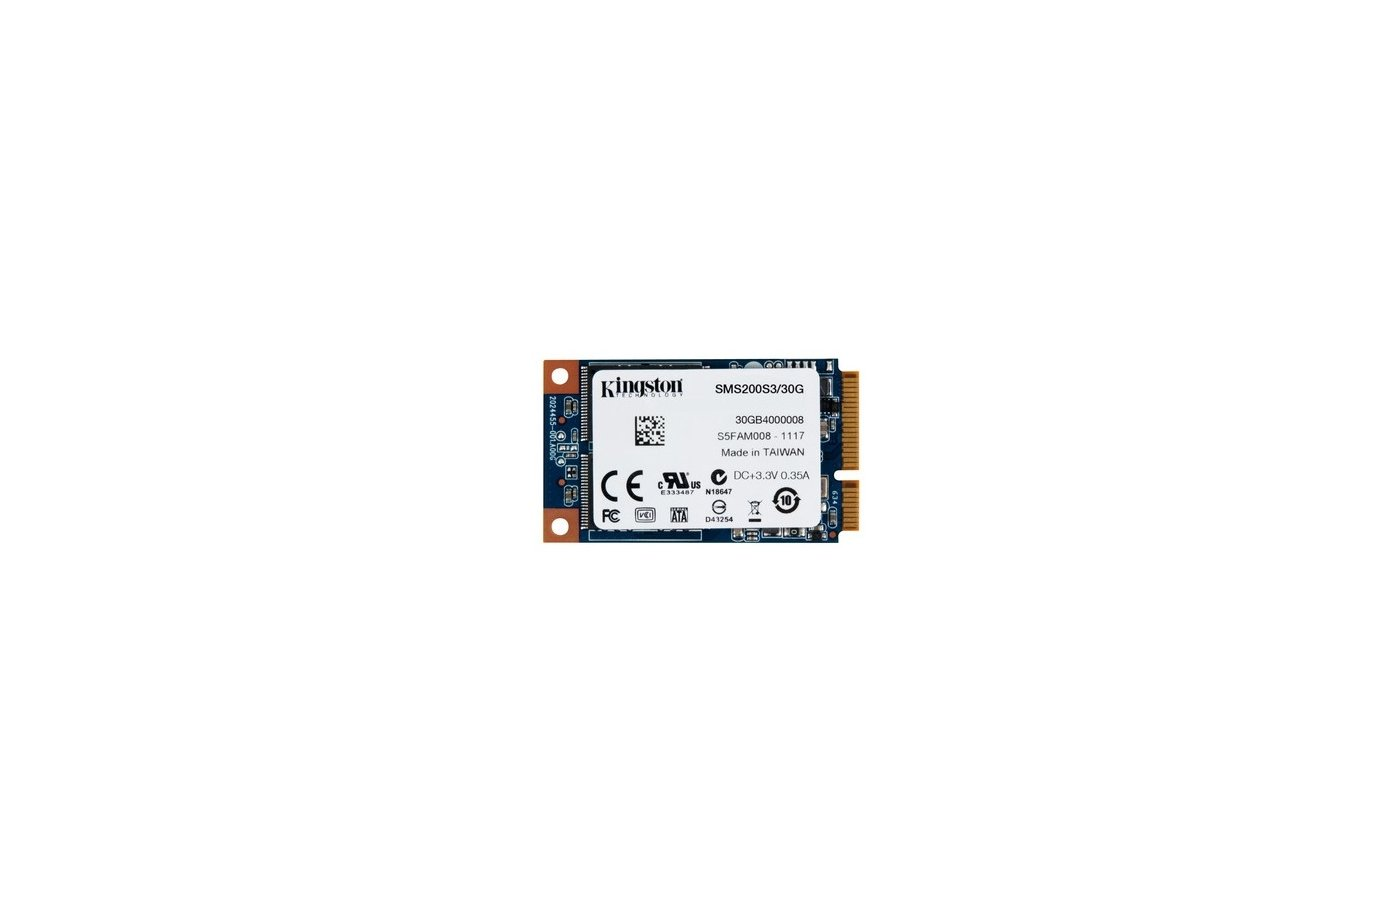 SSD жесткий диск Kingston mSATA 30Gb SMS200S3/30G SSDNow mS200 w510Mb/s r550Mb/s MLC